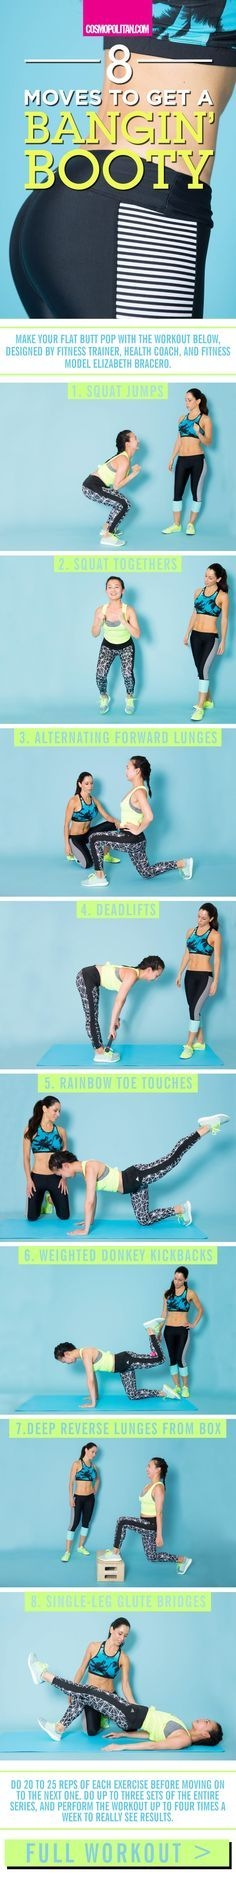 HOW TO GET A BIGGER BUTT: Give your backside a sexy pop (and strength) with this workout and these fitness tips from fitness trainer, health coach, and fitness model Elizabeth Bracero. Do these butt moves at home or at the gym —this simple workout can be done anywhere. Click through for the full workout info and instructional gifs that teach you how to correctly do each move.